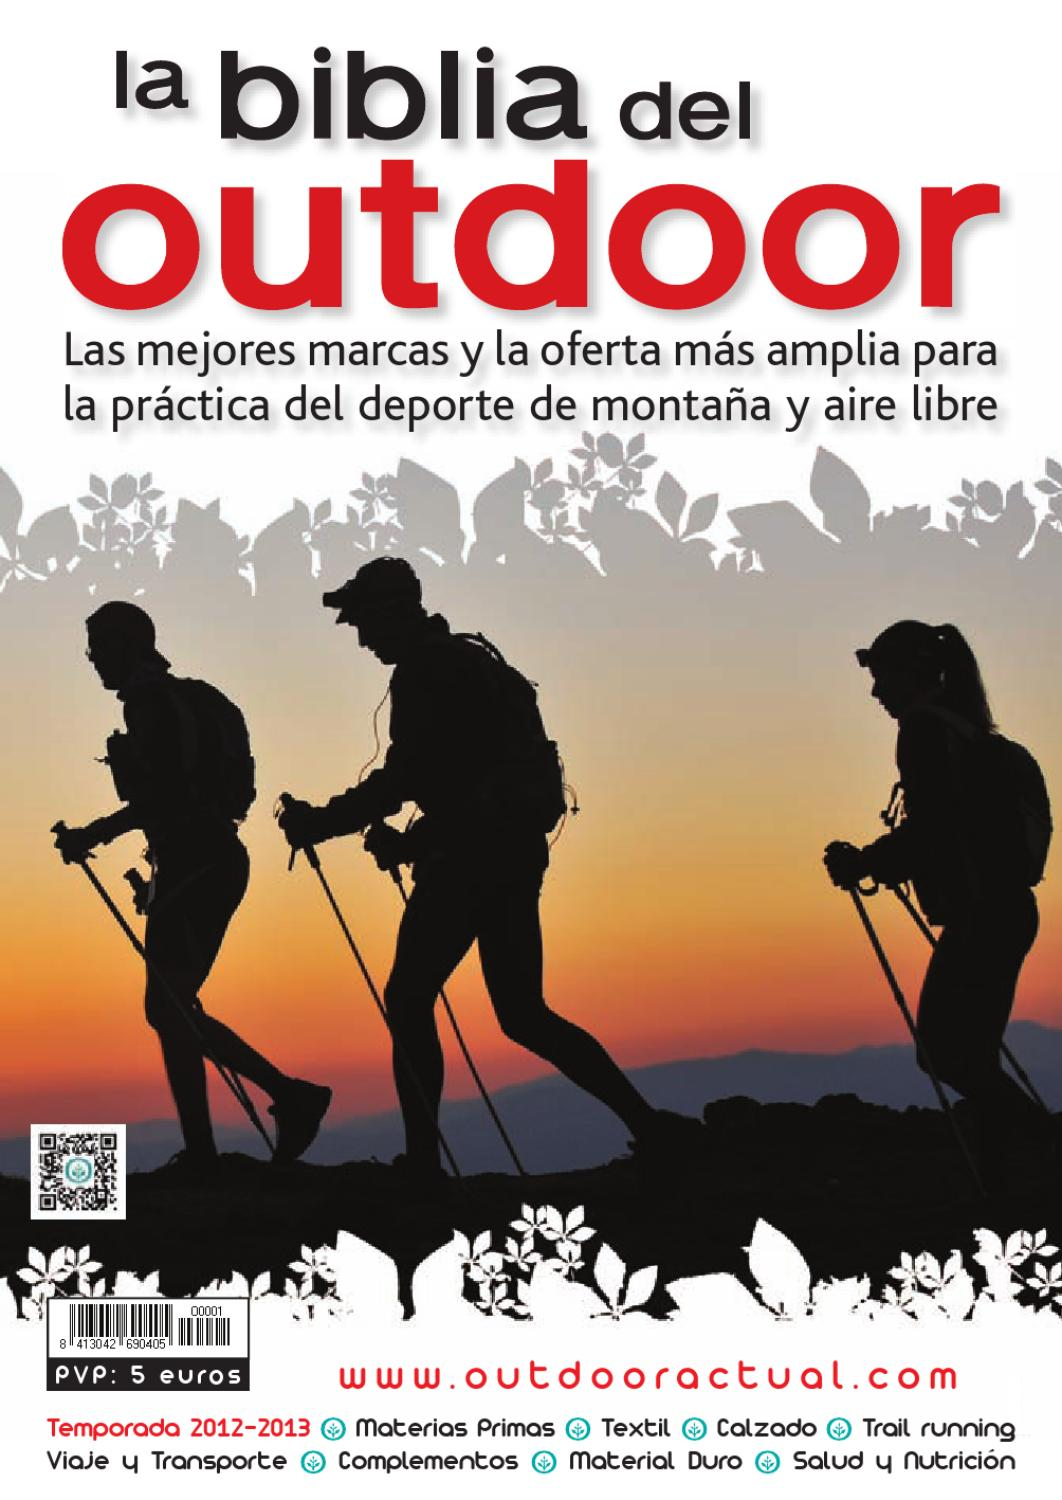 best service 4f08d e1c71 La Biblia del Outdoor 2012-2013 by Outdoor Actual - issuu